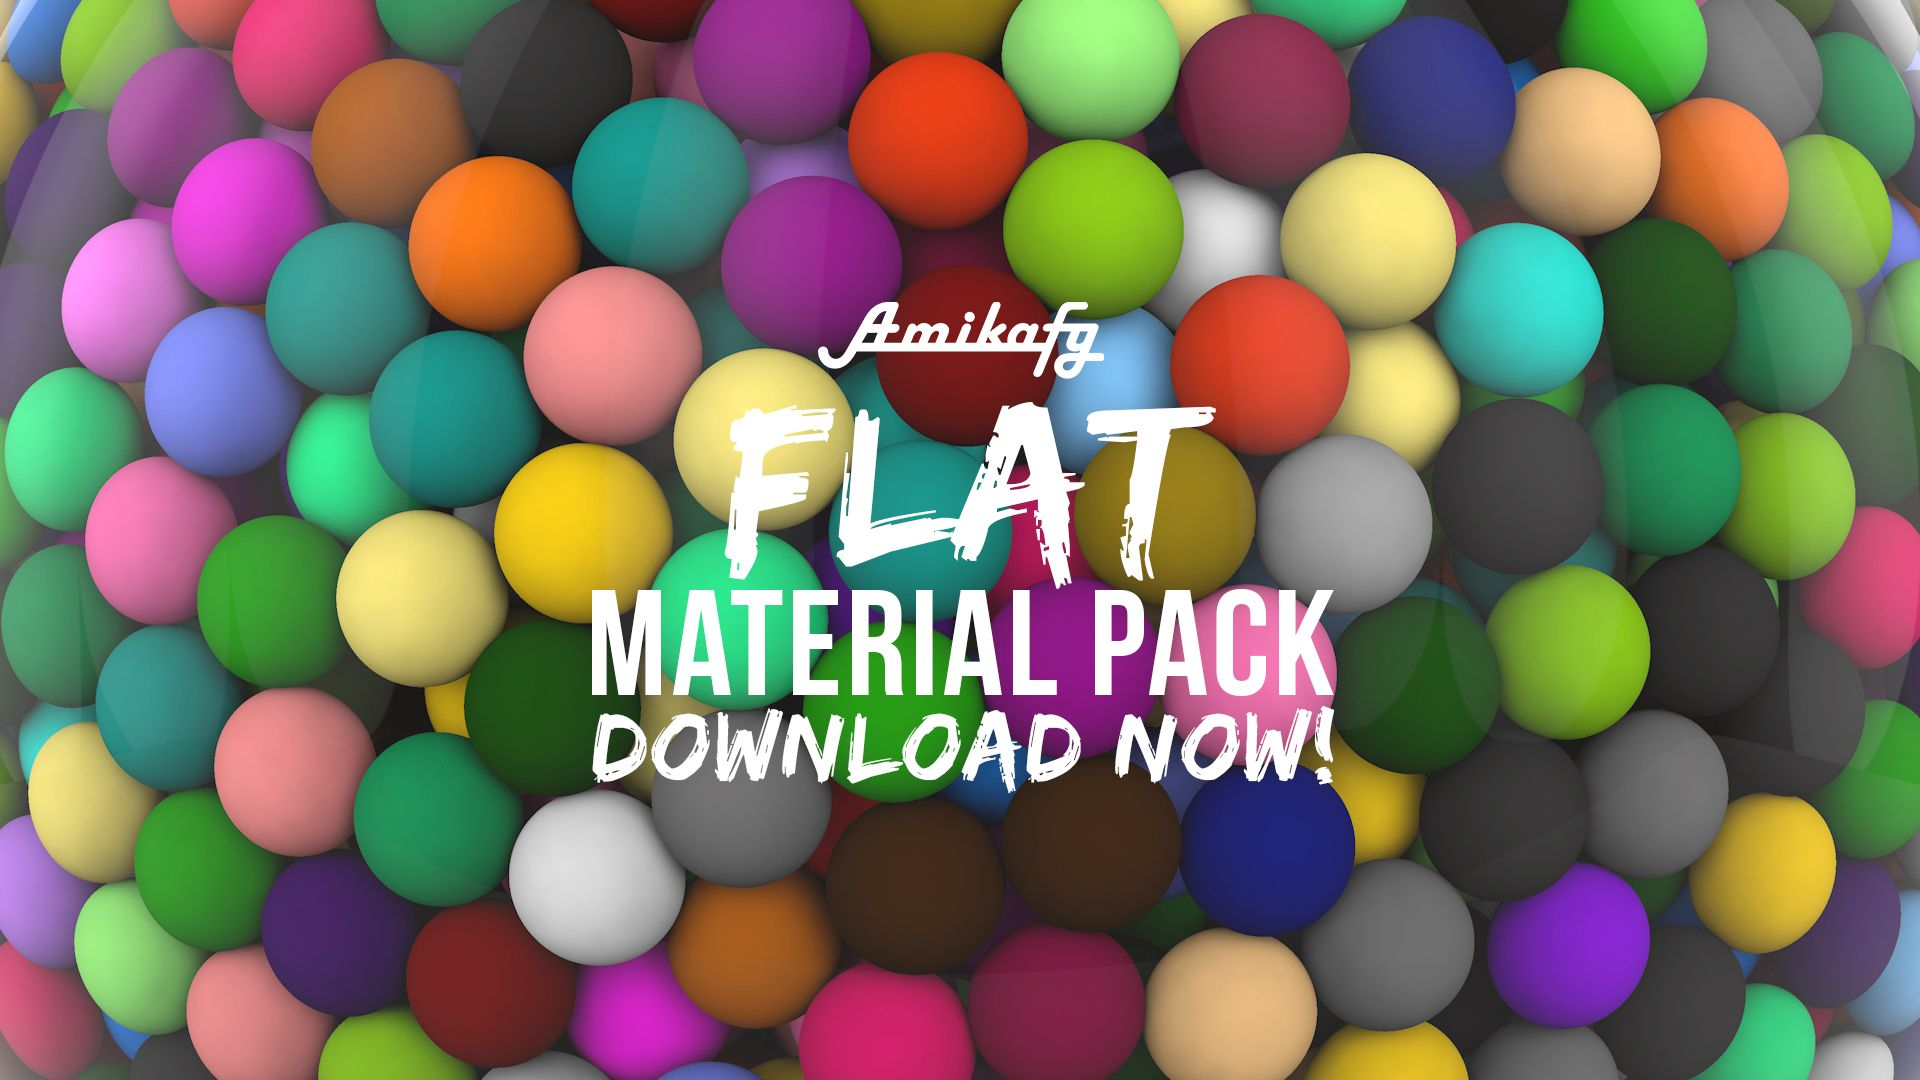 Cinema4D Flat Materials Pack (Free Download) by Amikafy